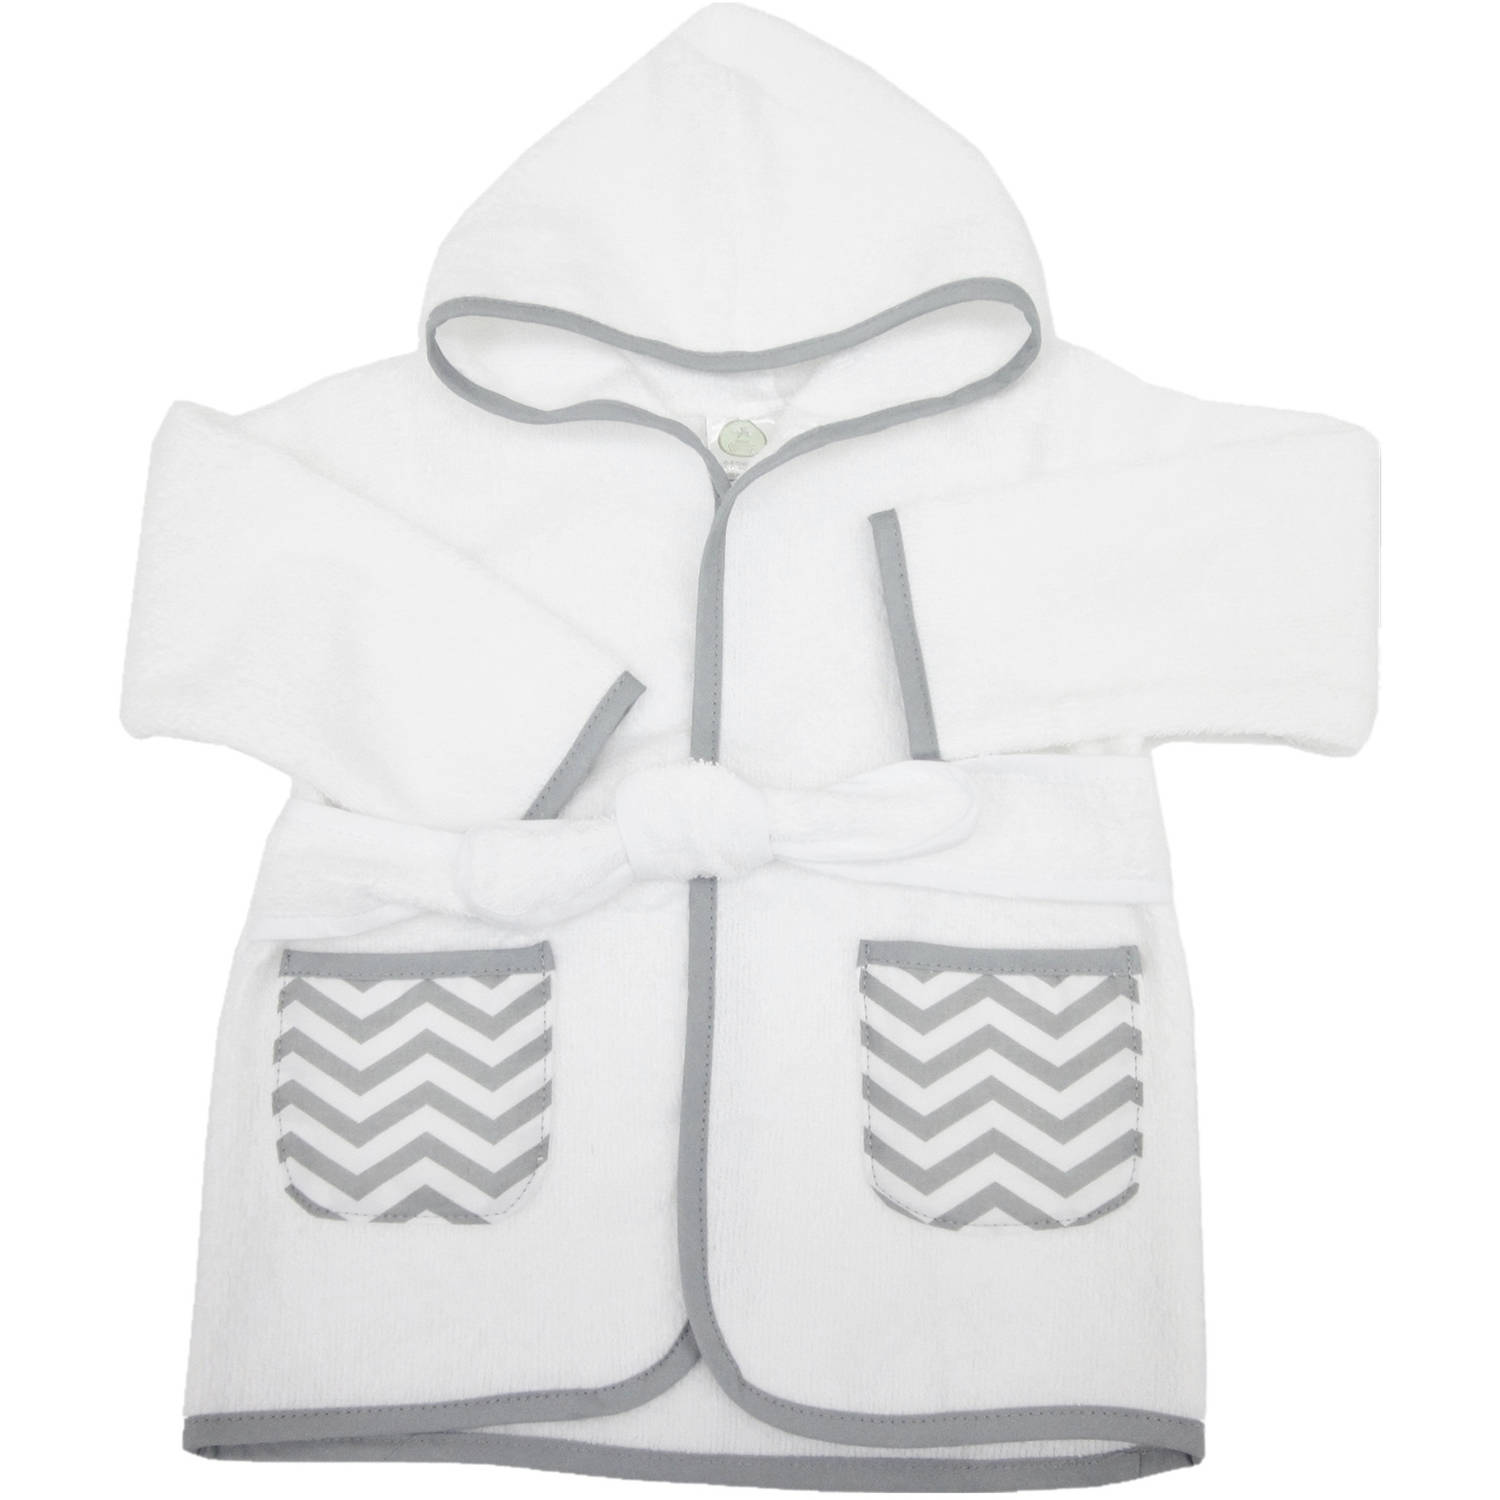 TL Care 0-9 Months Baby Bathrobe Made with Organic Cotton, Gray Zigzag